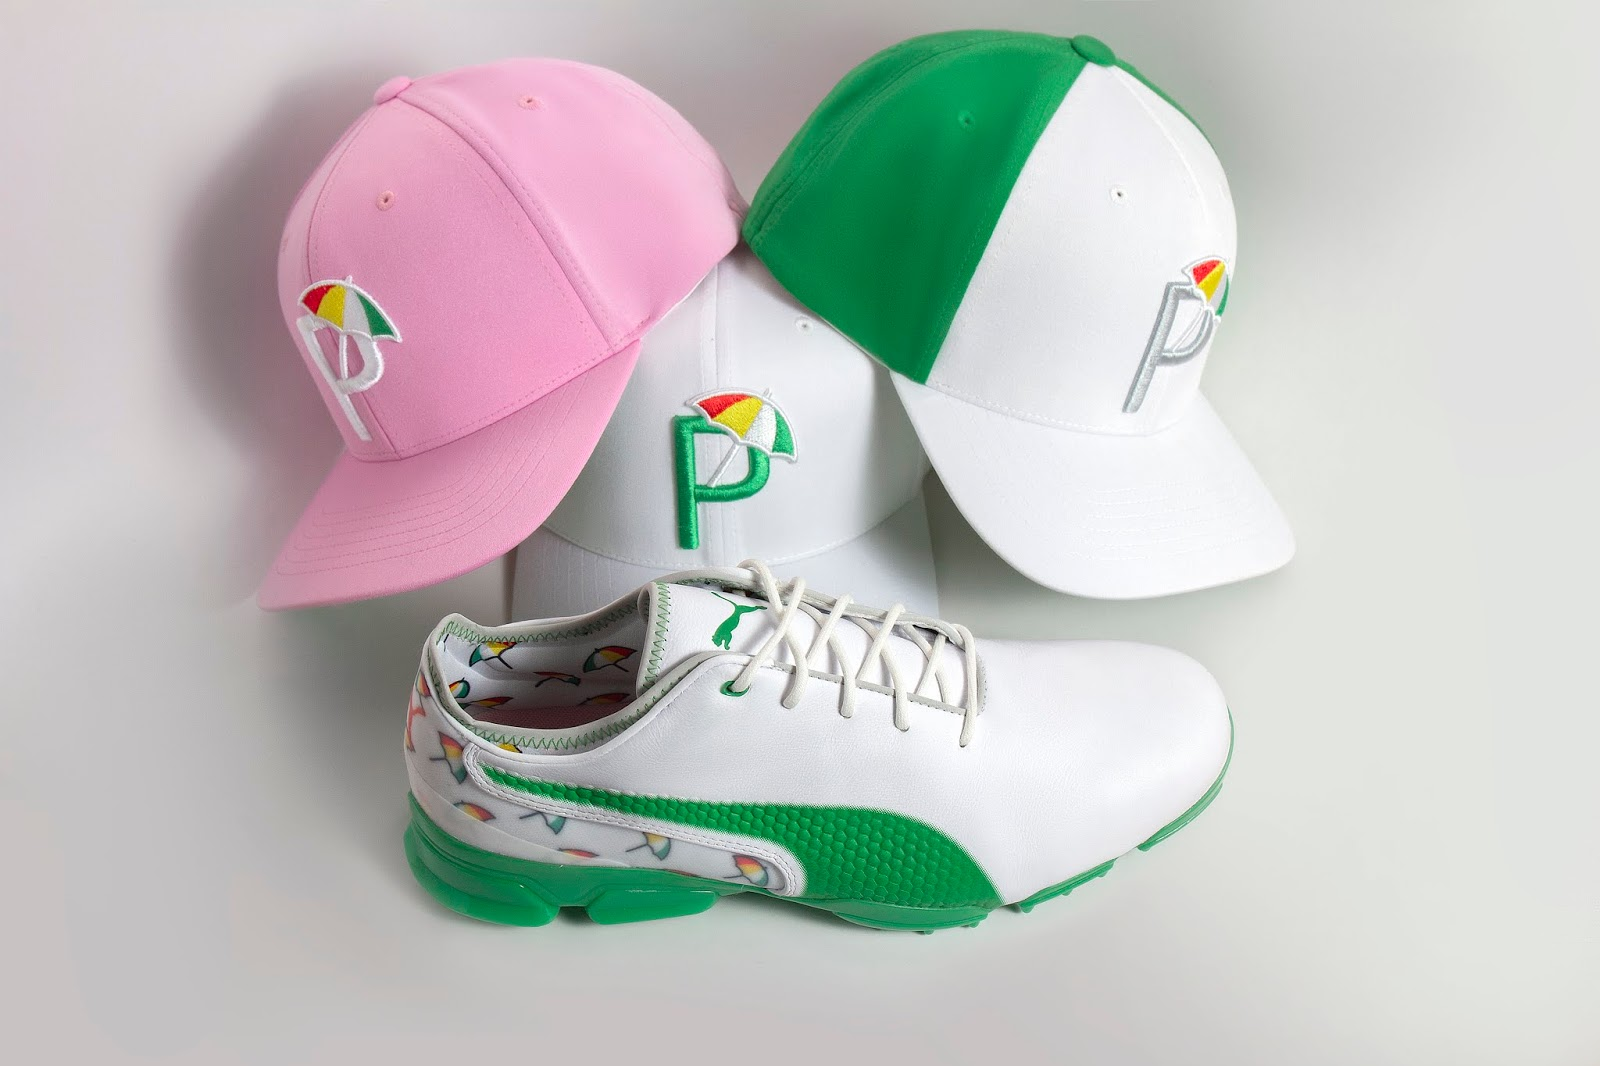 db432828ee45ca In 2018, Fowler sported a pair of custom Arnold Palmer hi-tops, and those  were auctioned off along with other Arnold Palmer-branded PUMA gear to  raise more ...